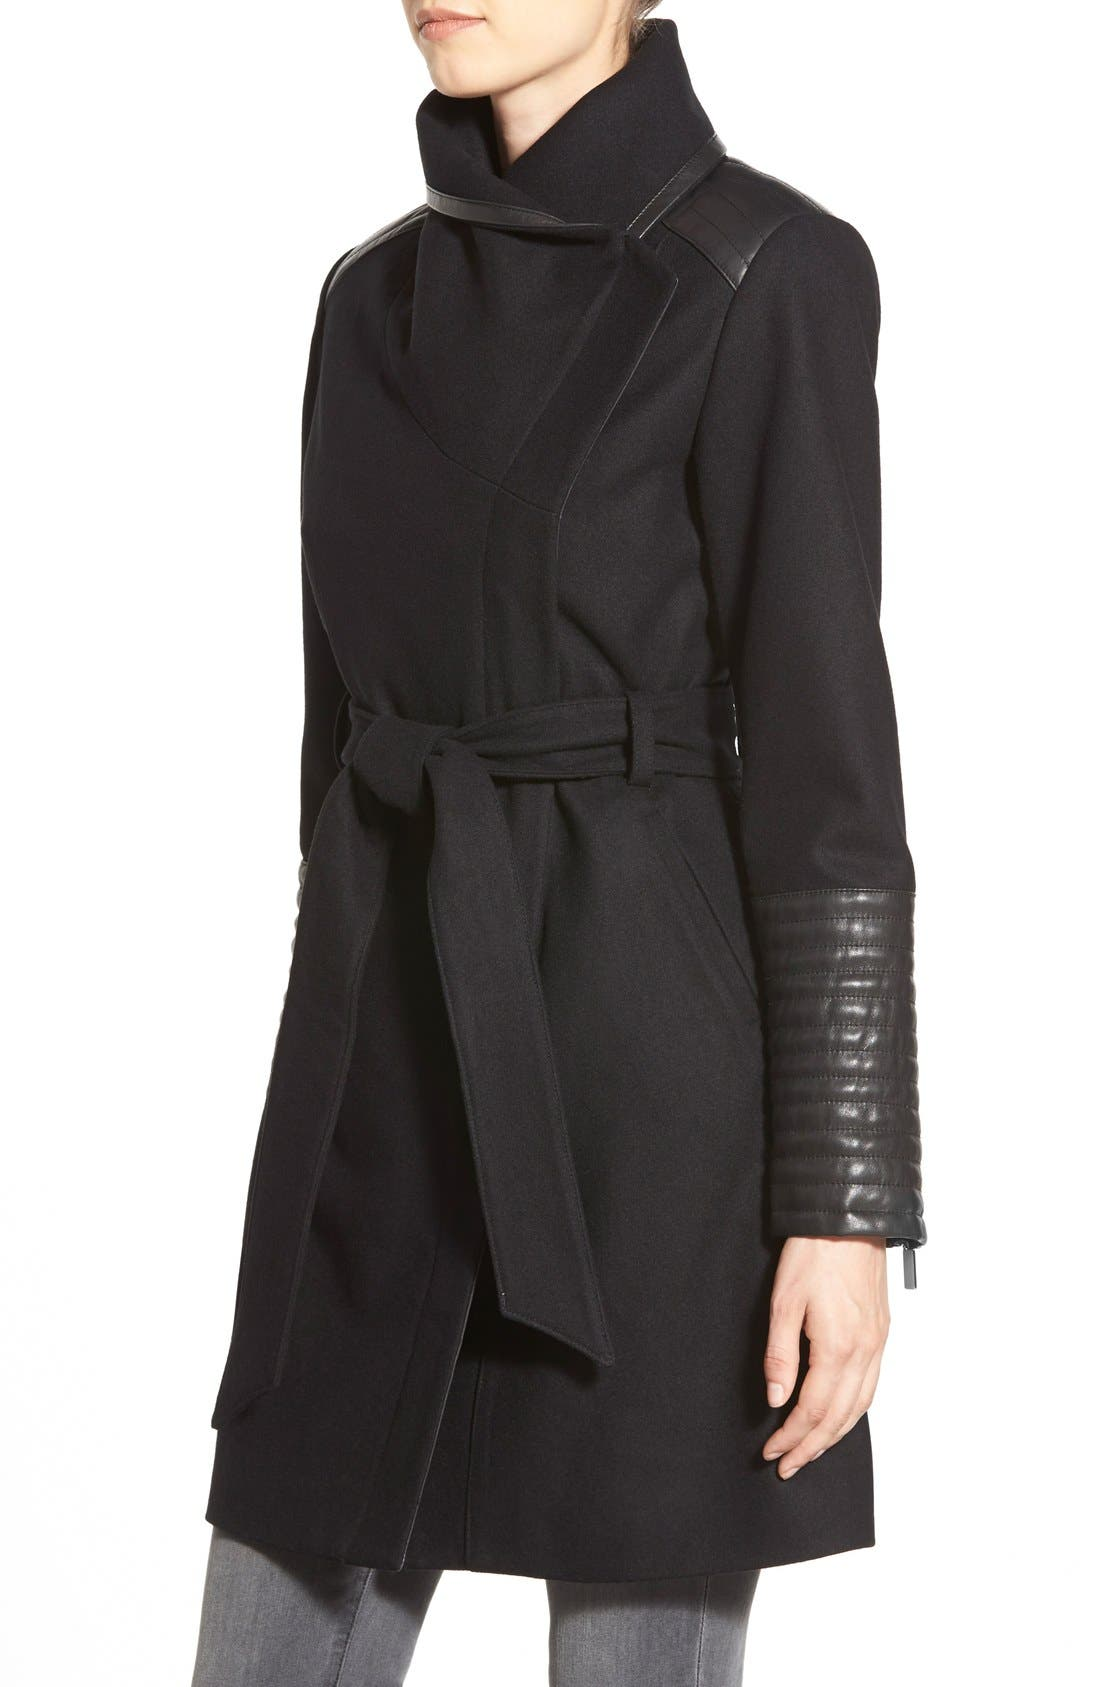 Alternate Image 3  - Belle Badgley Mischka 'Lorian' Faux Leather Trim Belted Asymmetrical Wool Blend Coat